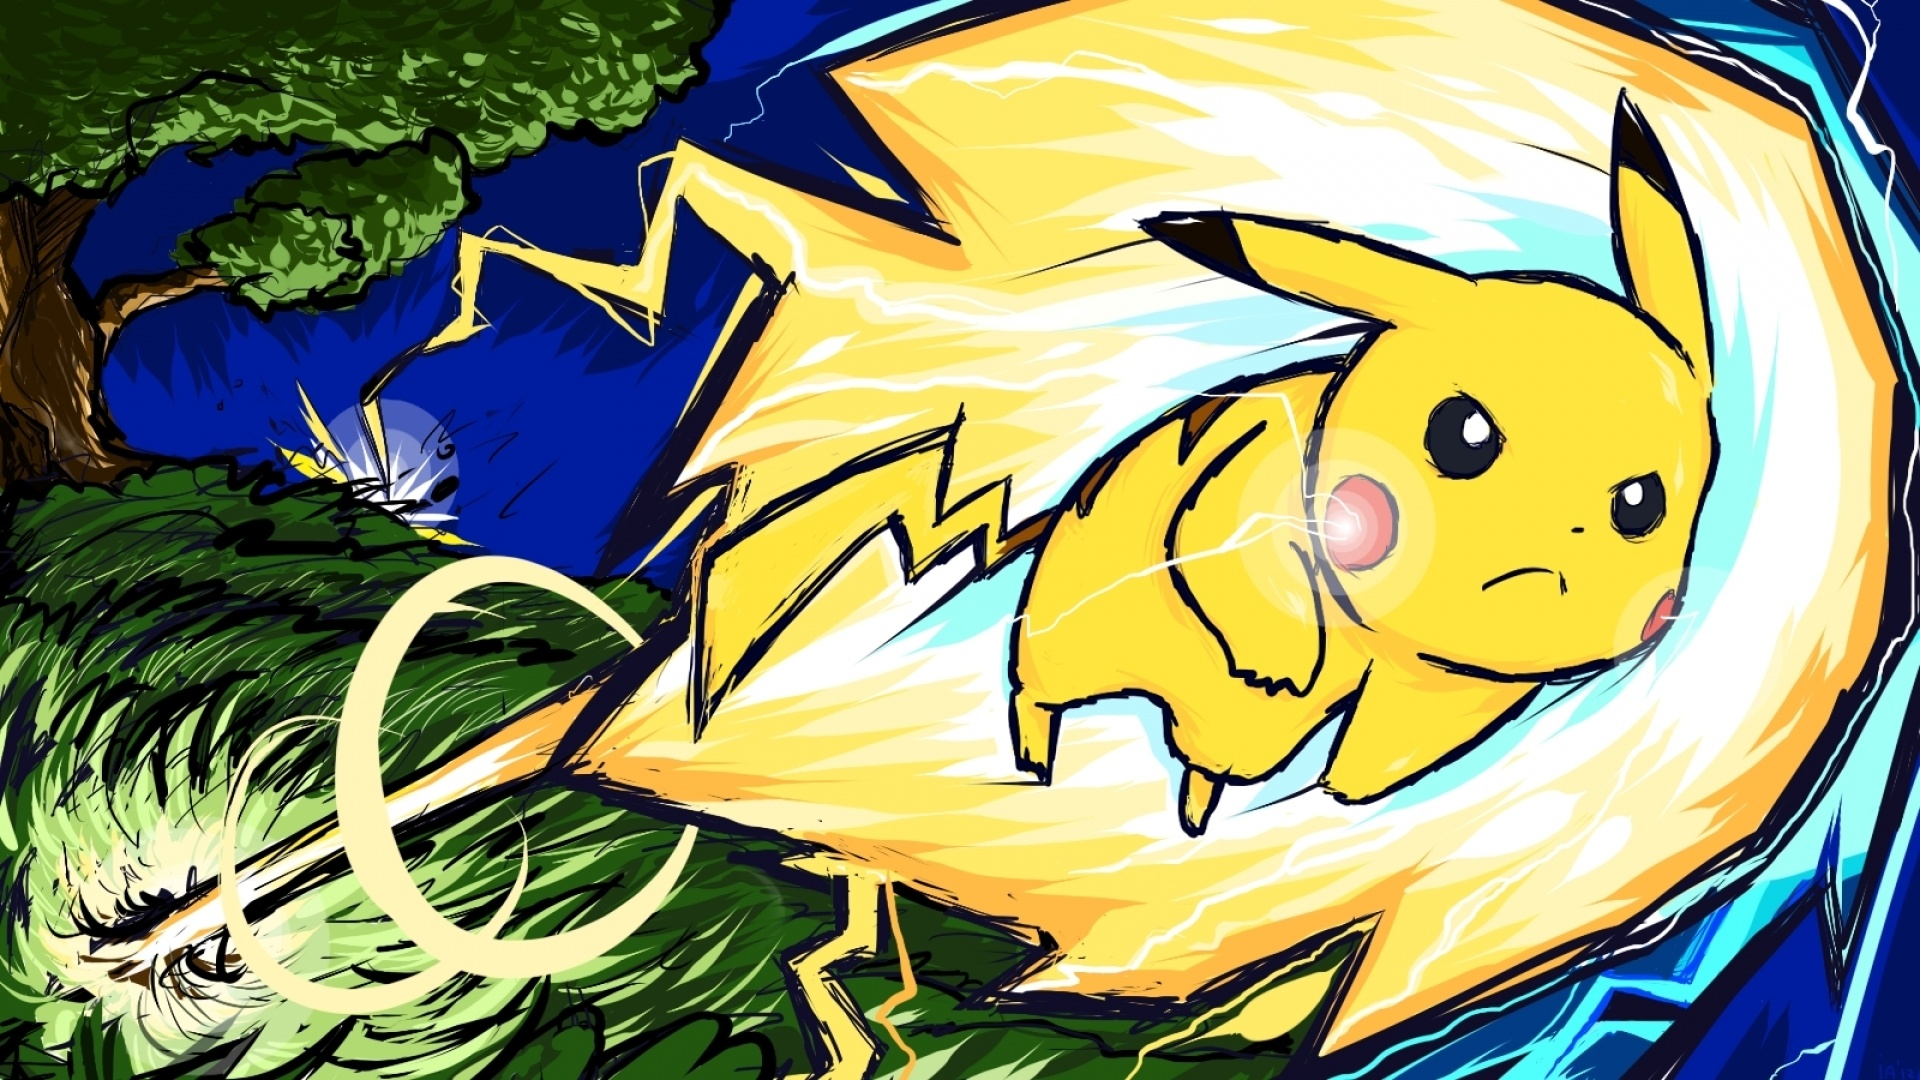 Pikachu background picture